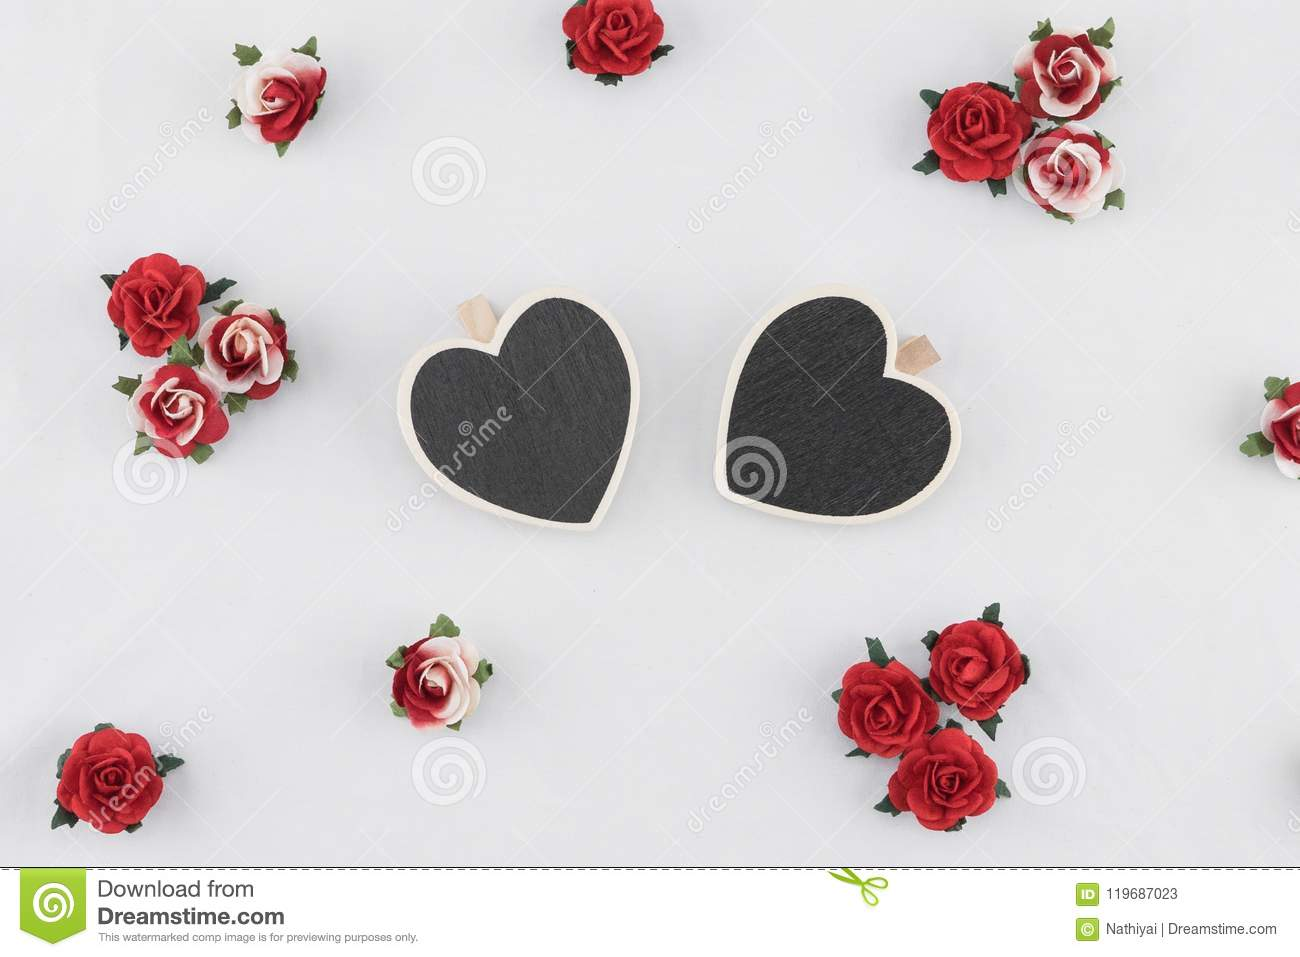 Tiny heart shape blackboard decorate with red rose paper flowers download tiny heart shape blackboard decorate with red rose paper flowers stock image image of mightylinksfo